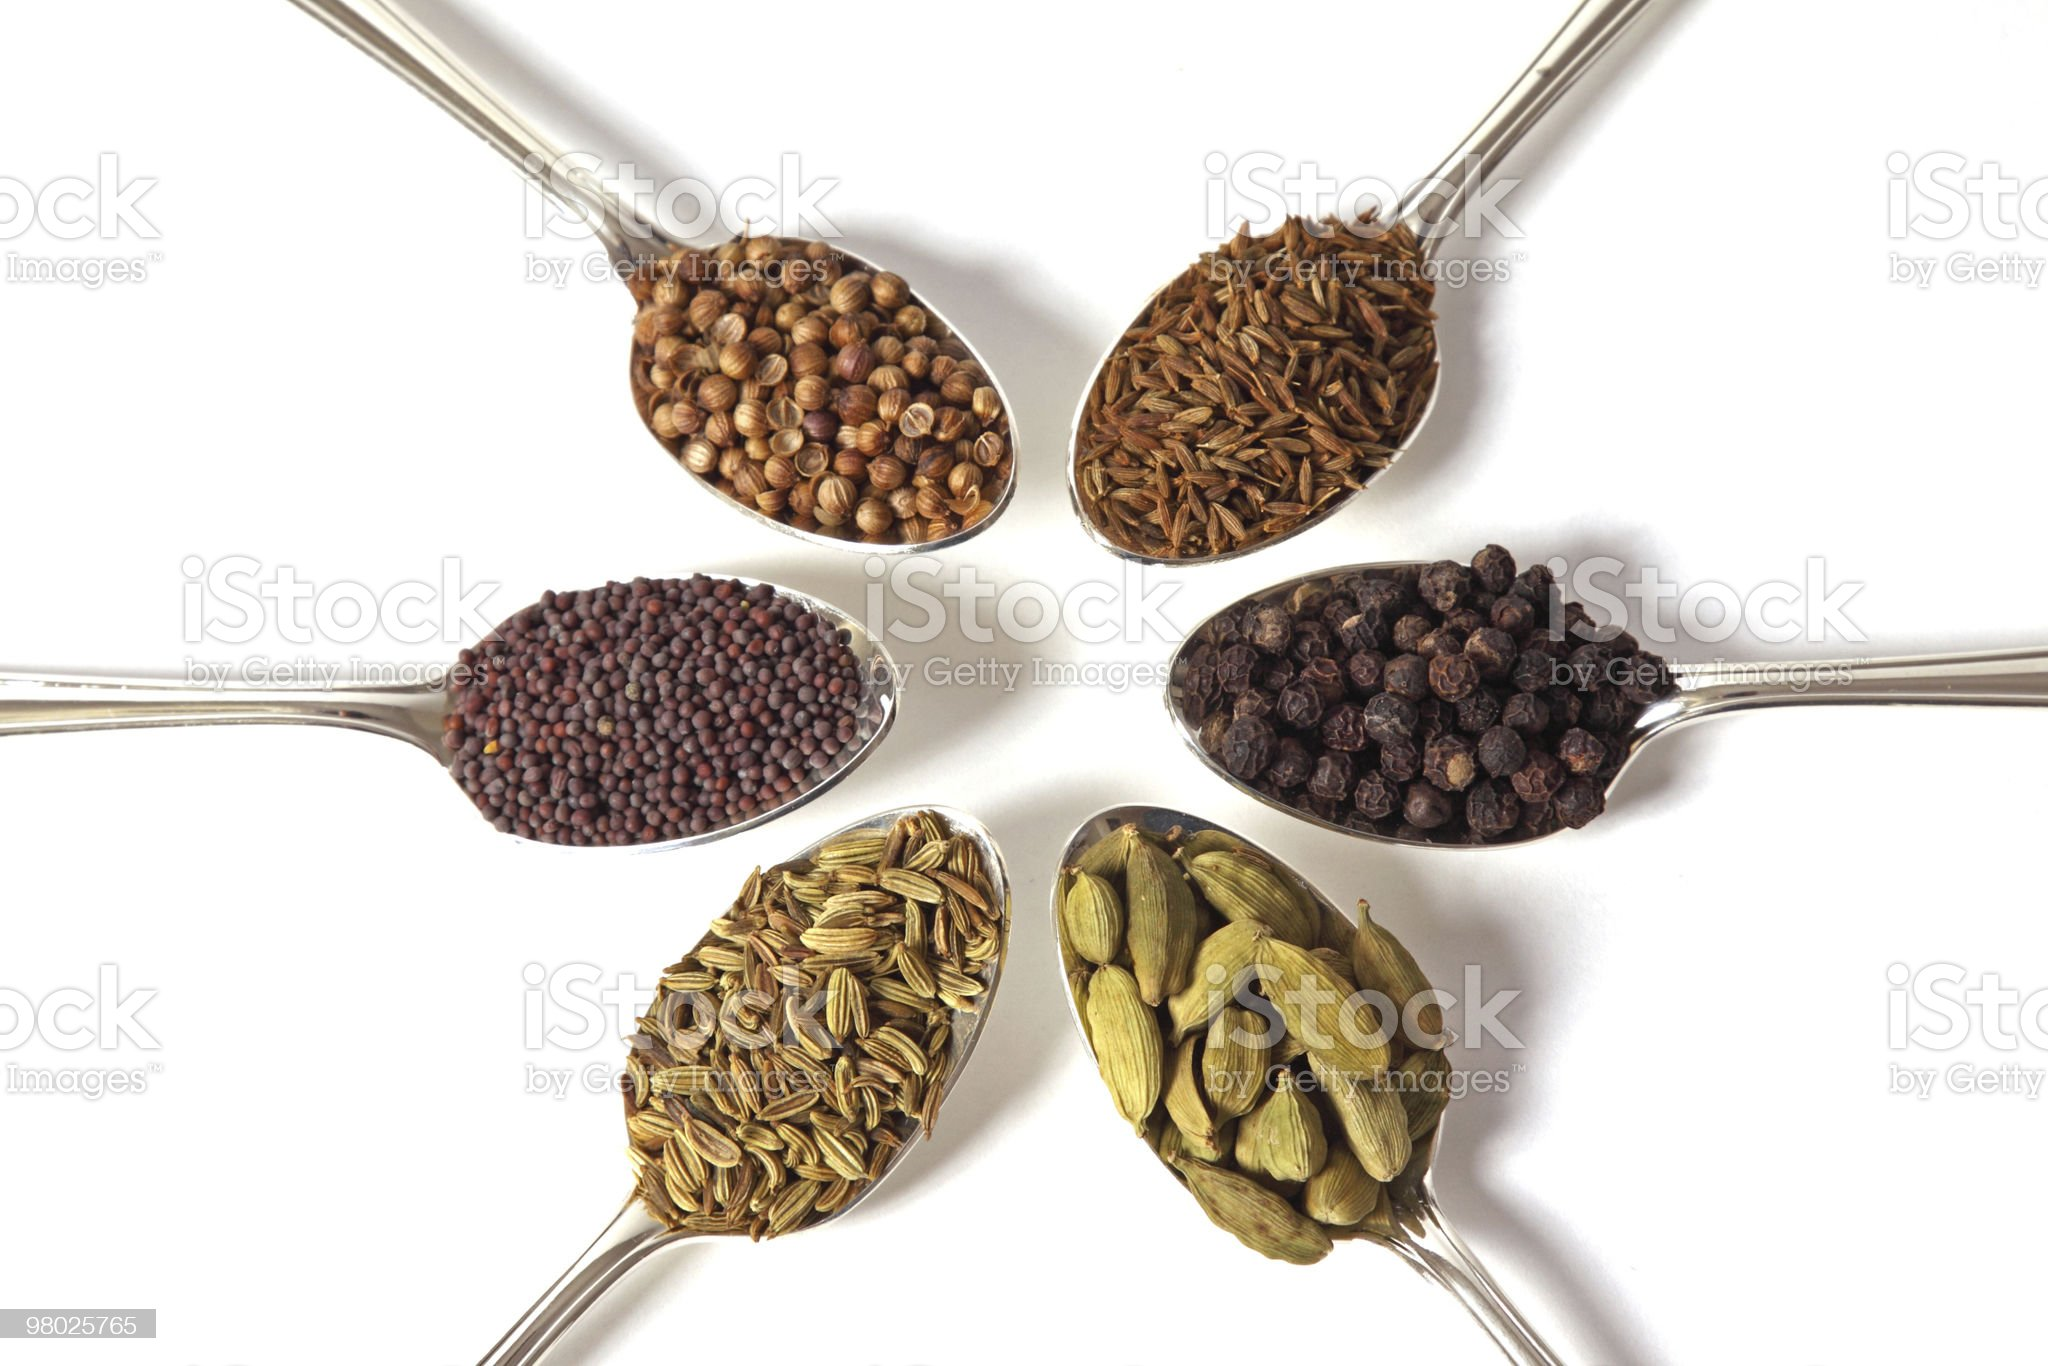 Spice Spoons royalty-free stock photo